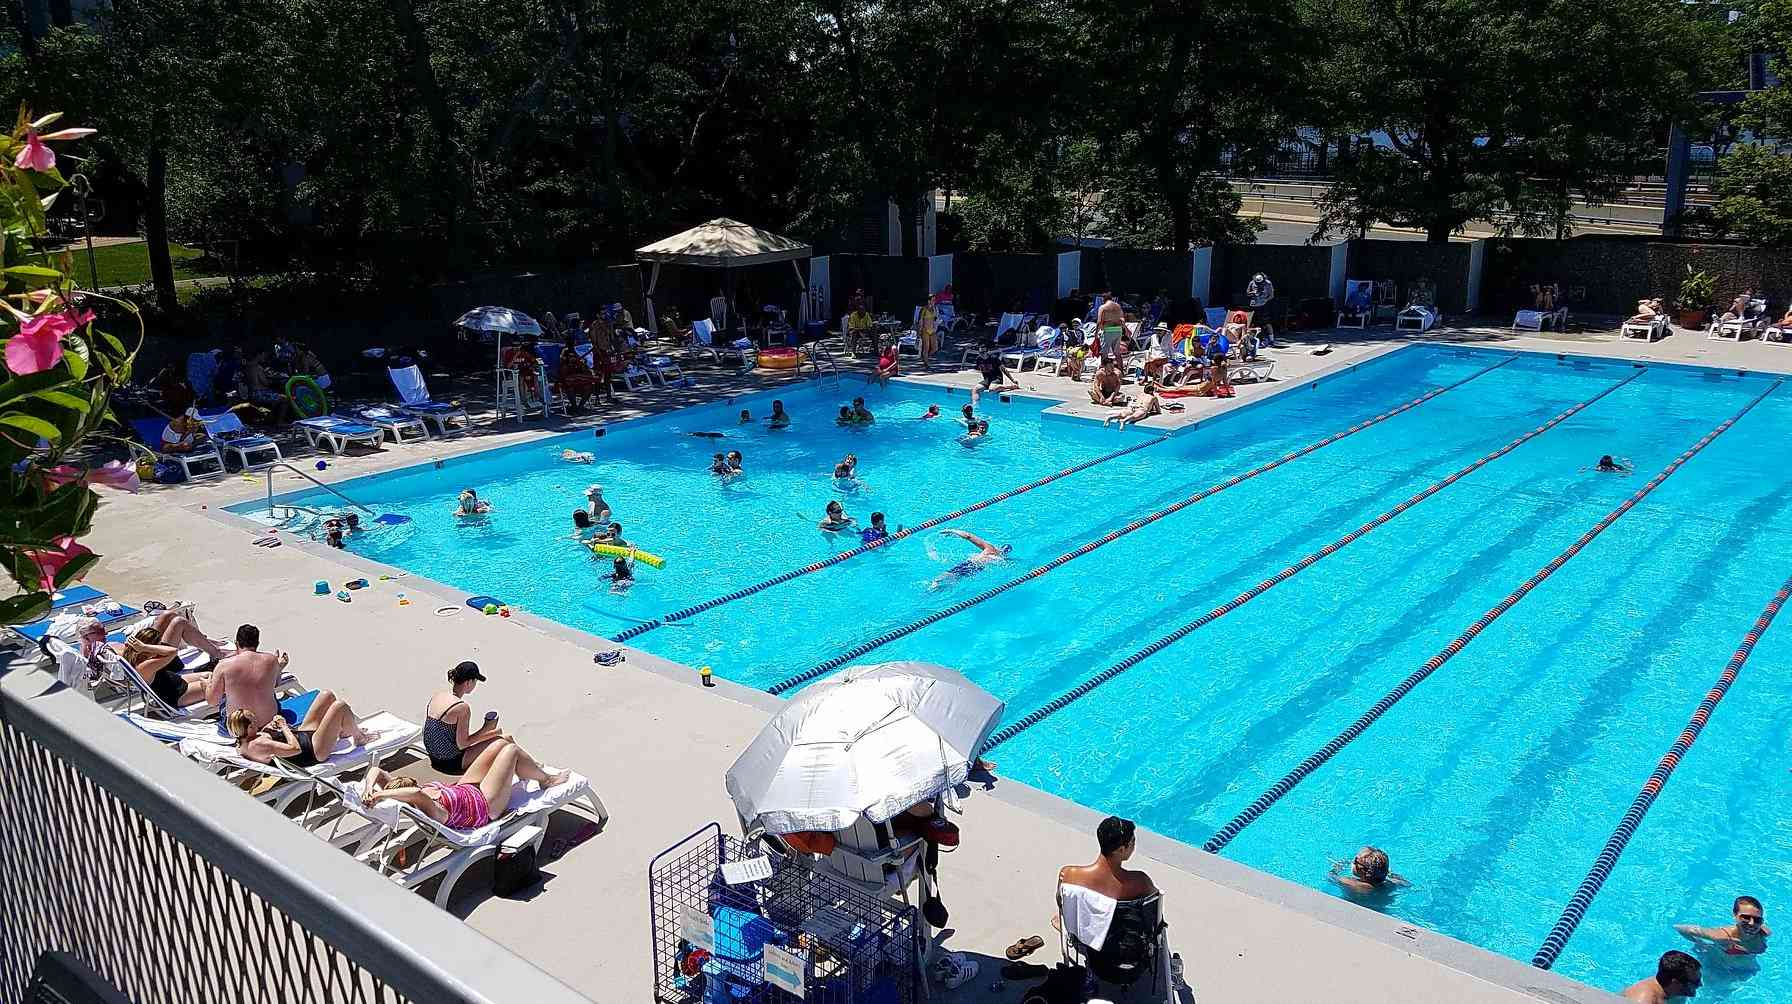 Outdoor pool with several people swimming laps, a bunch of people playing with pool floaties and people sunbathing on pool chairs